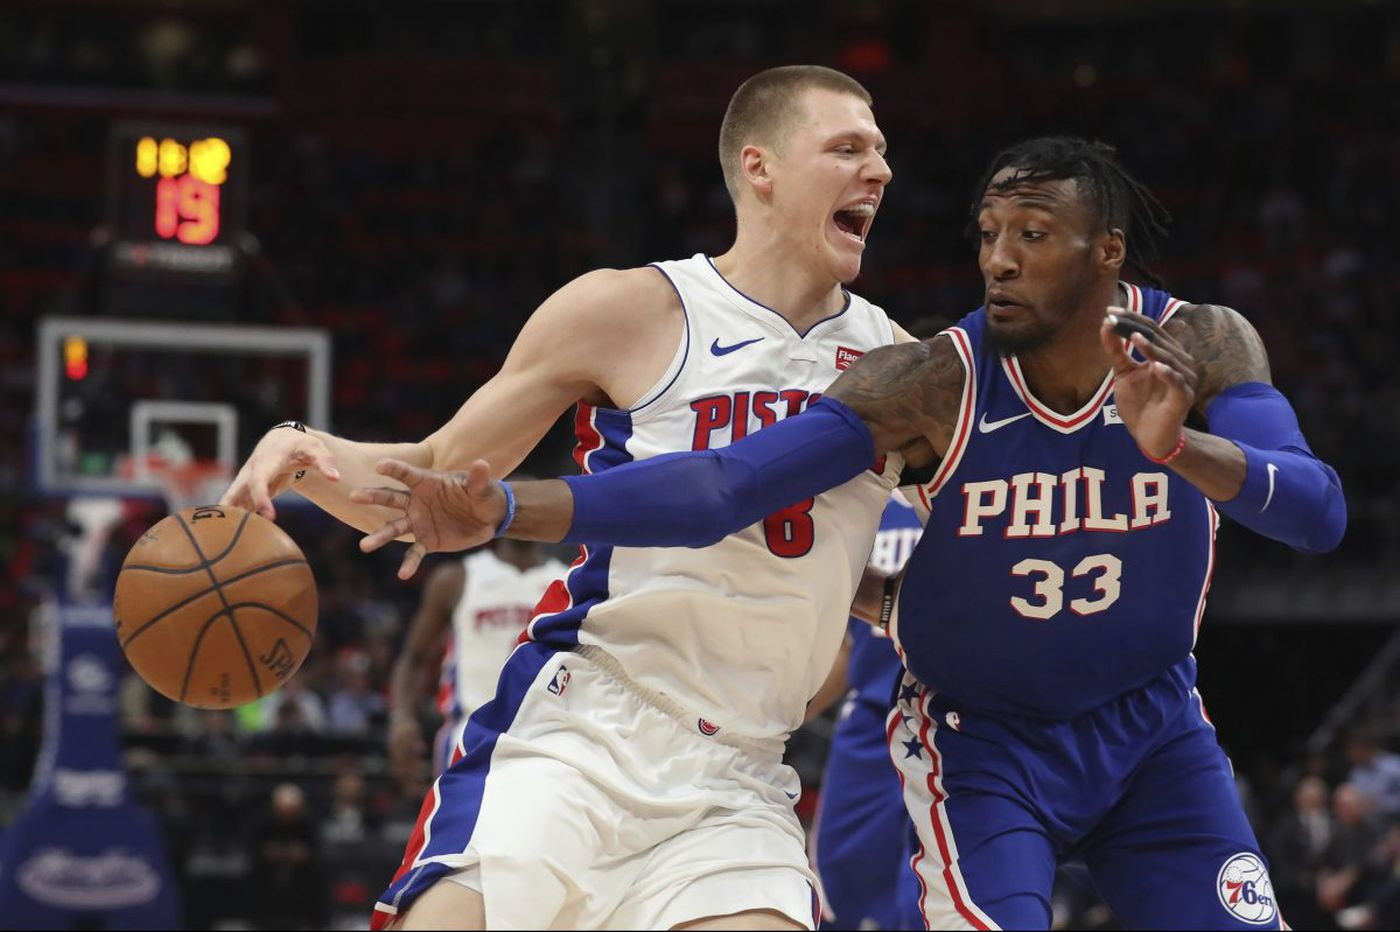 Sixers top Pistons for 12th straight win behind Ben Simmons, JJ Redick